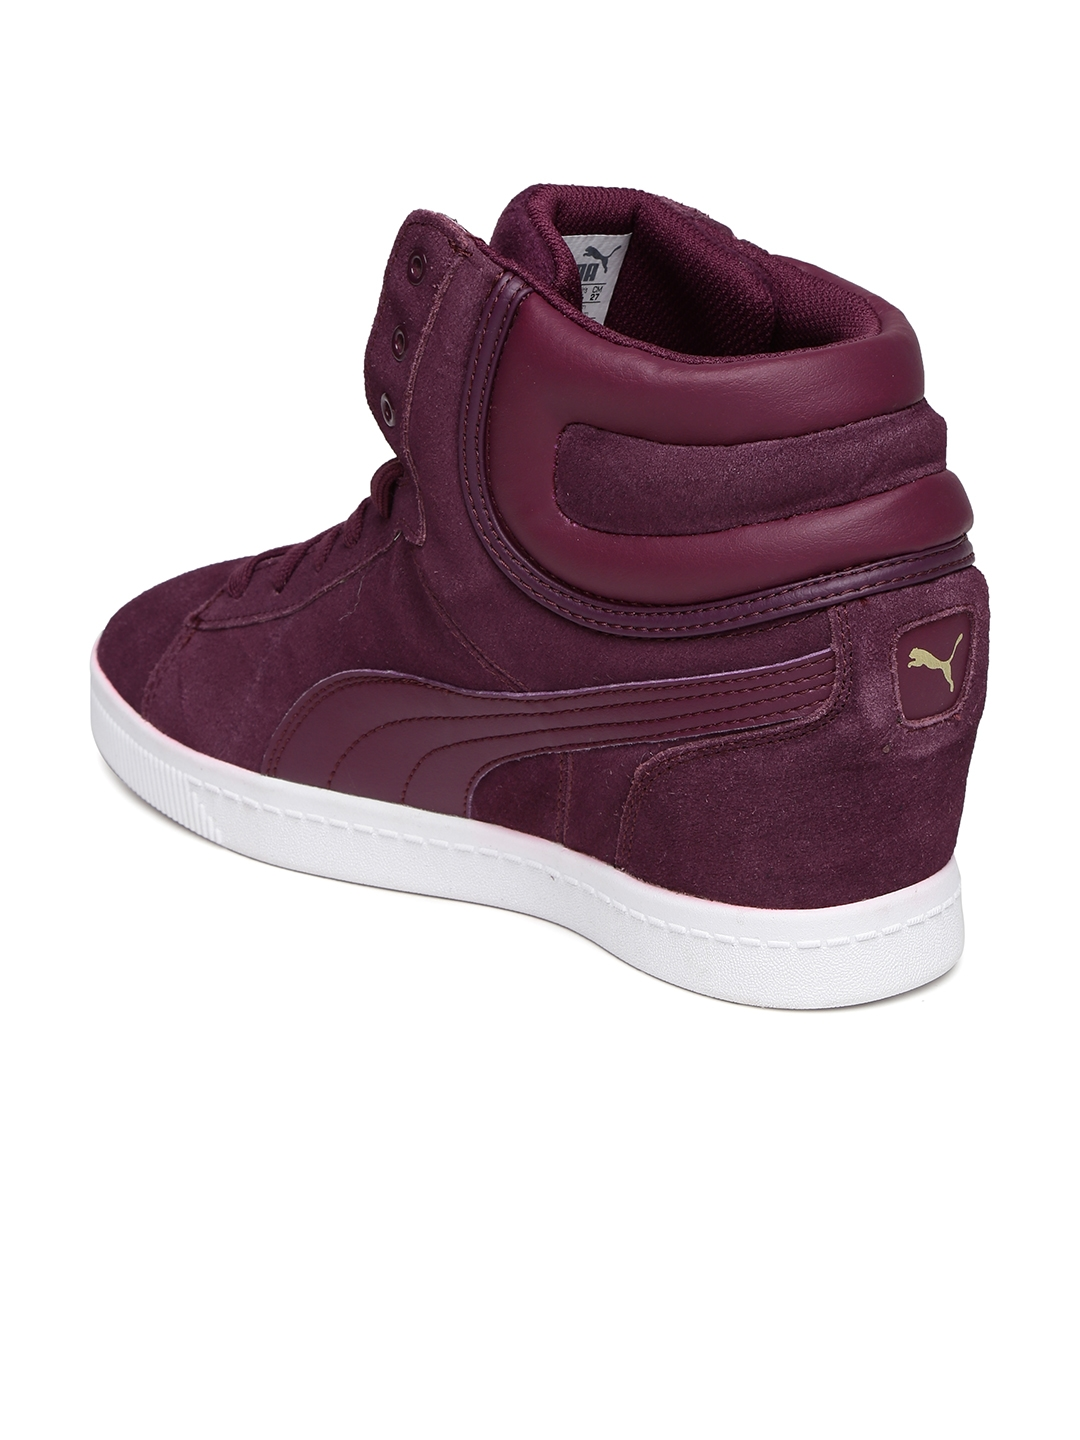 49af4889d31 Buy Puma Women Purple Vikky Wedge Suede Sneakers - Casual Shoes for ...